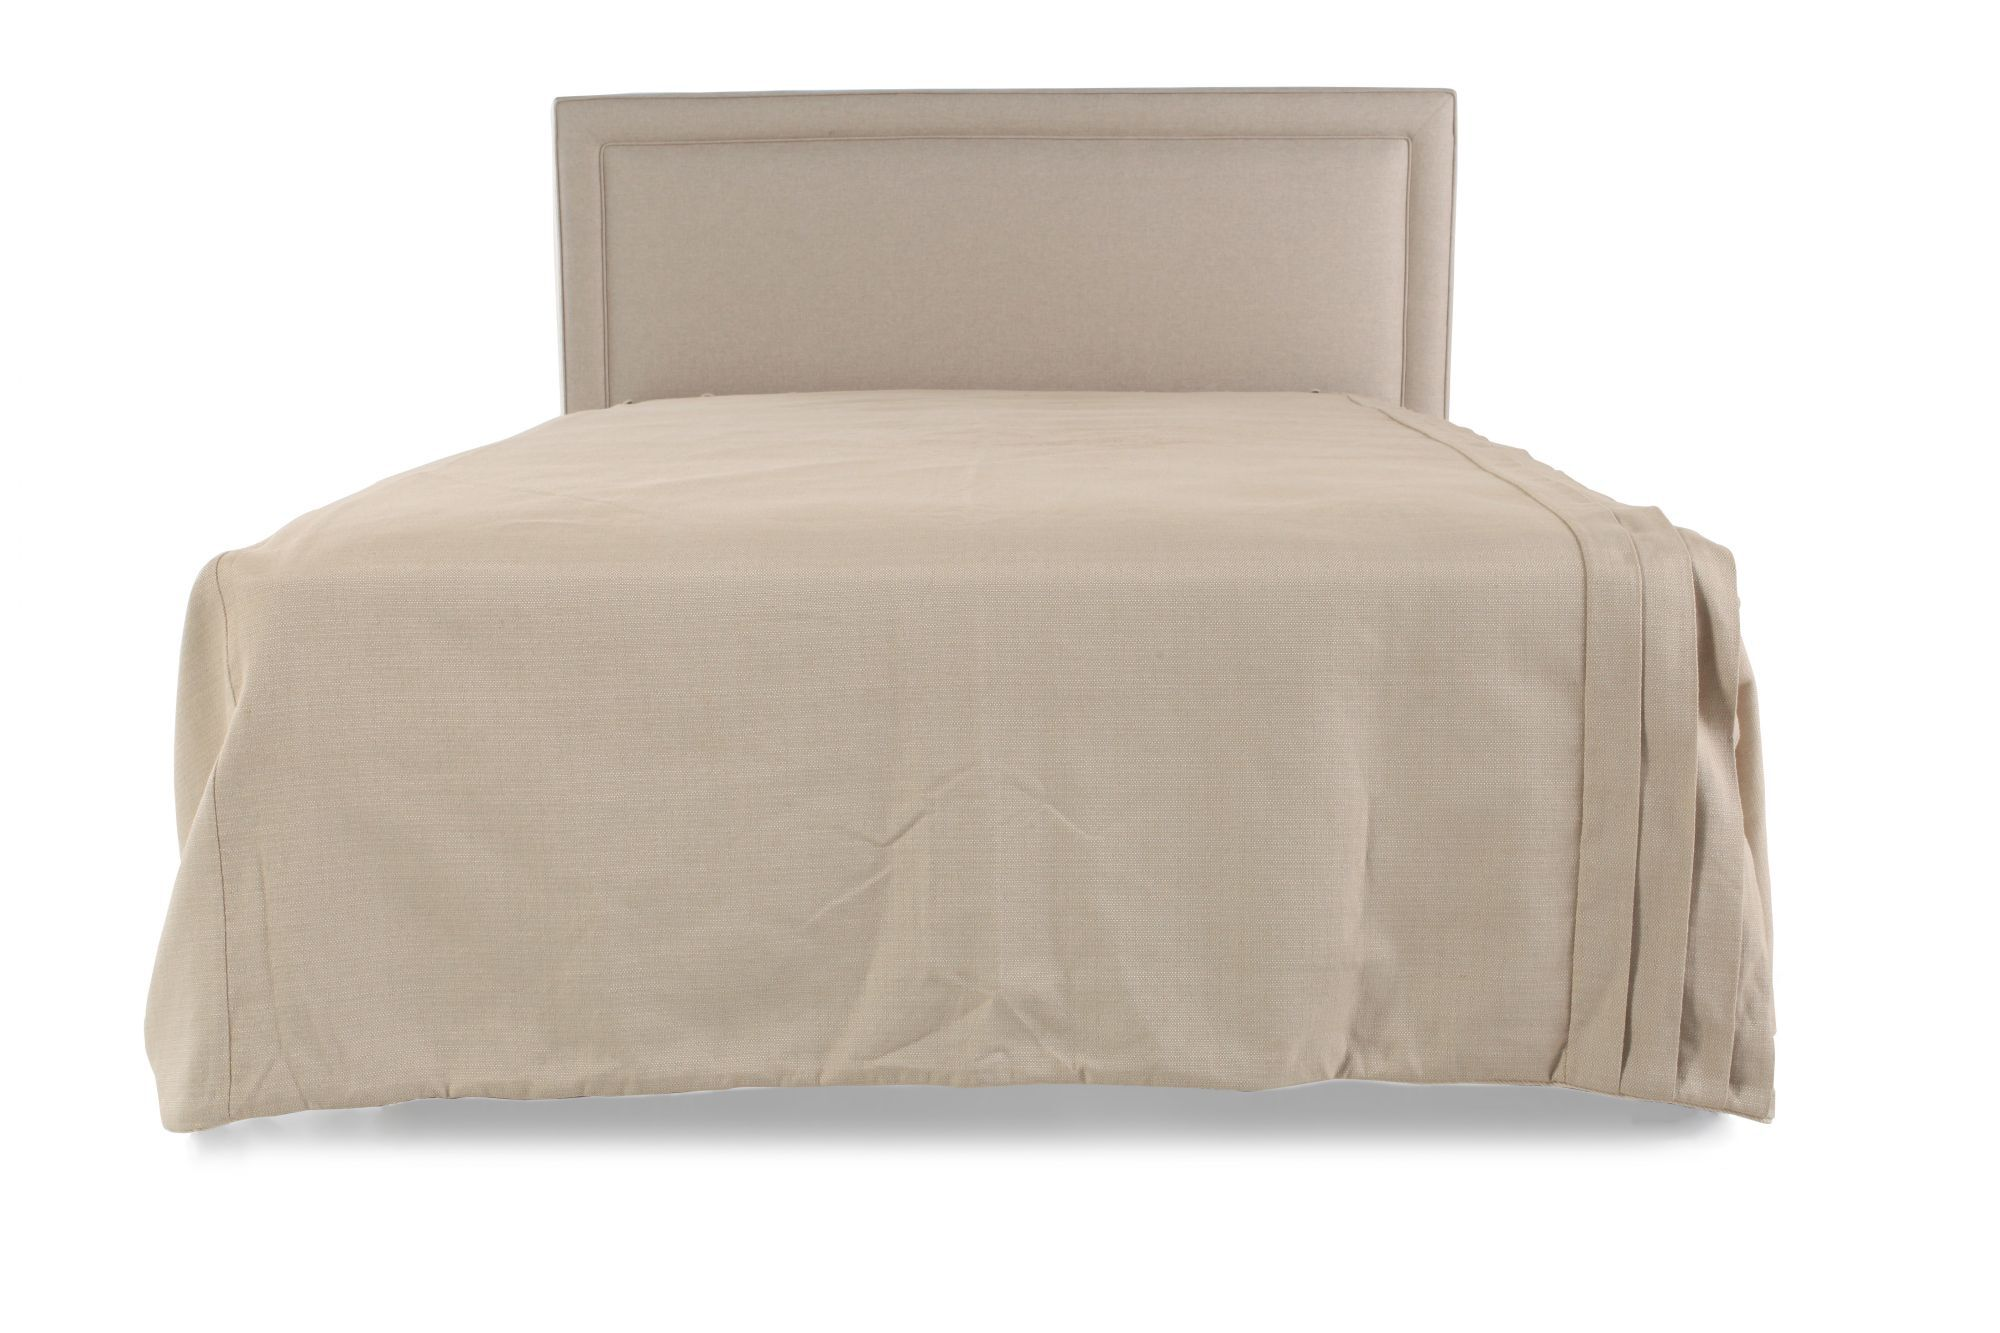 Headboards   Bed Headboards   Mathis Brothers Contemporary 49 quot  Queen Headboard in Light